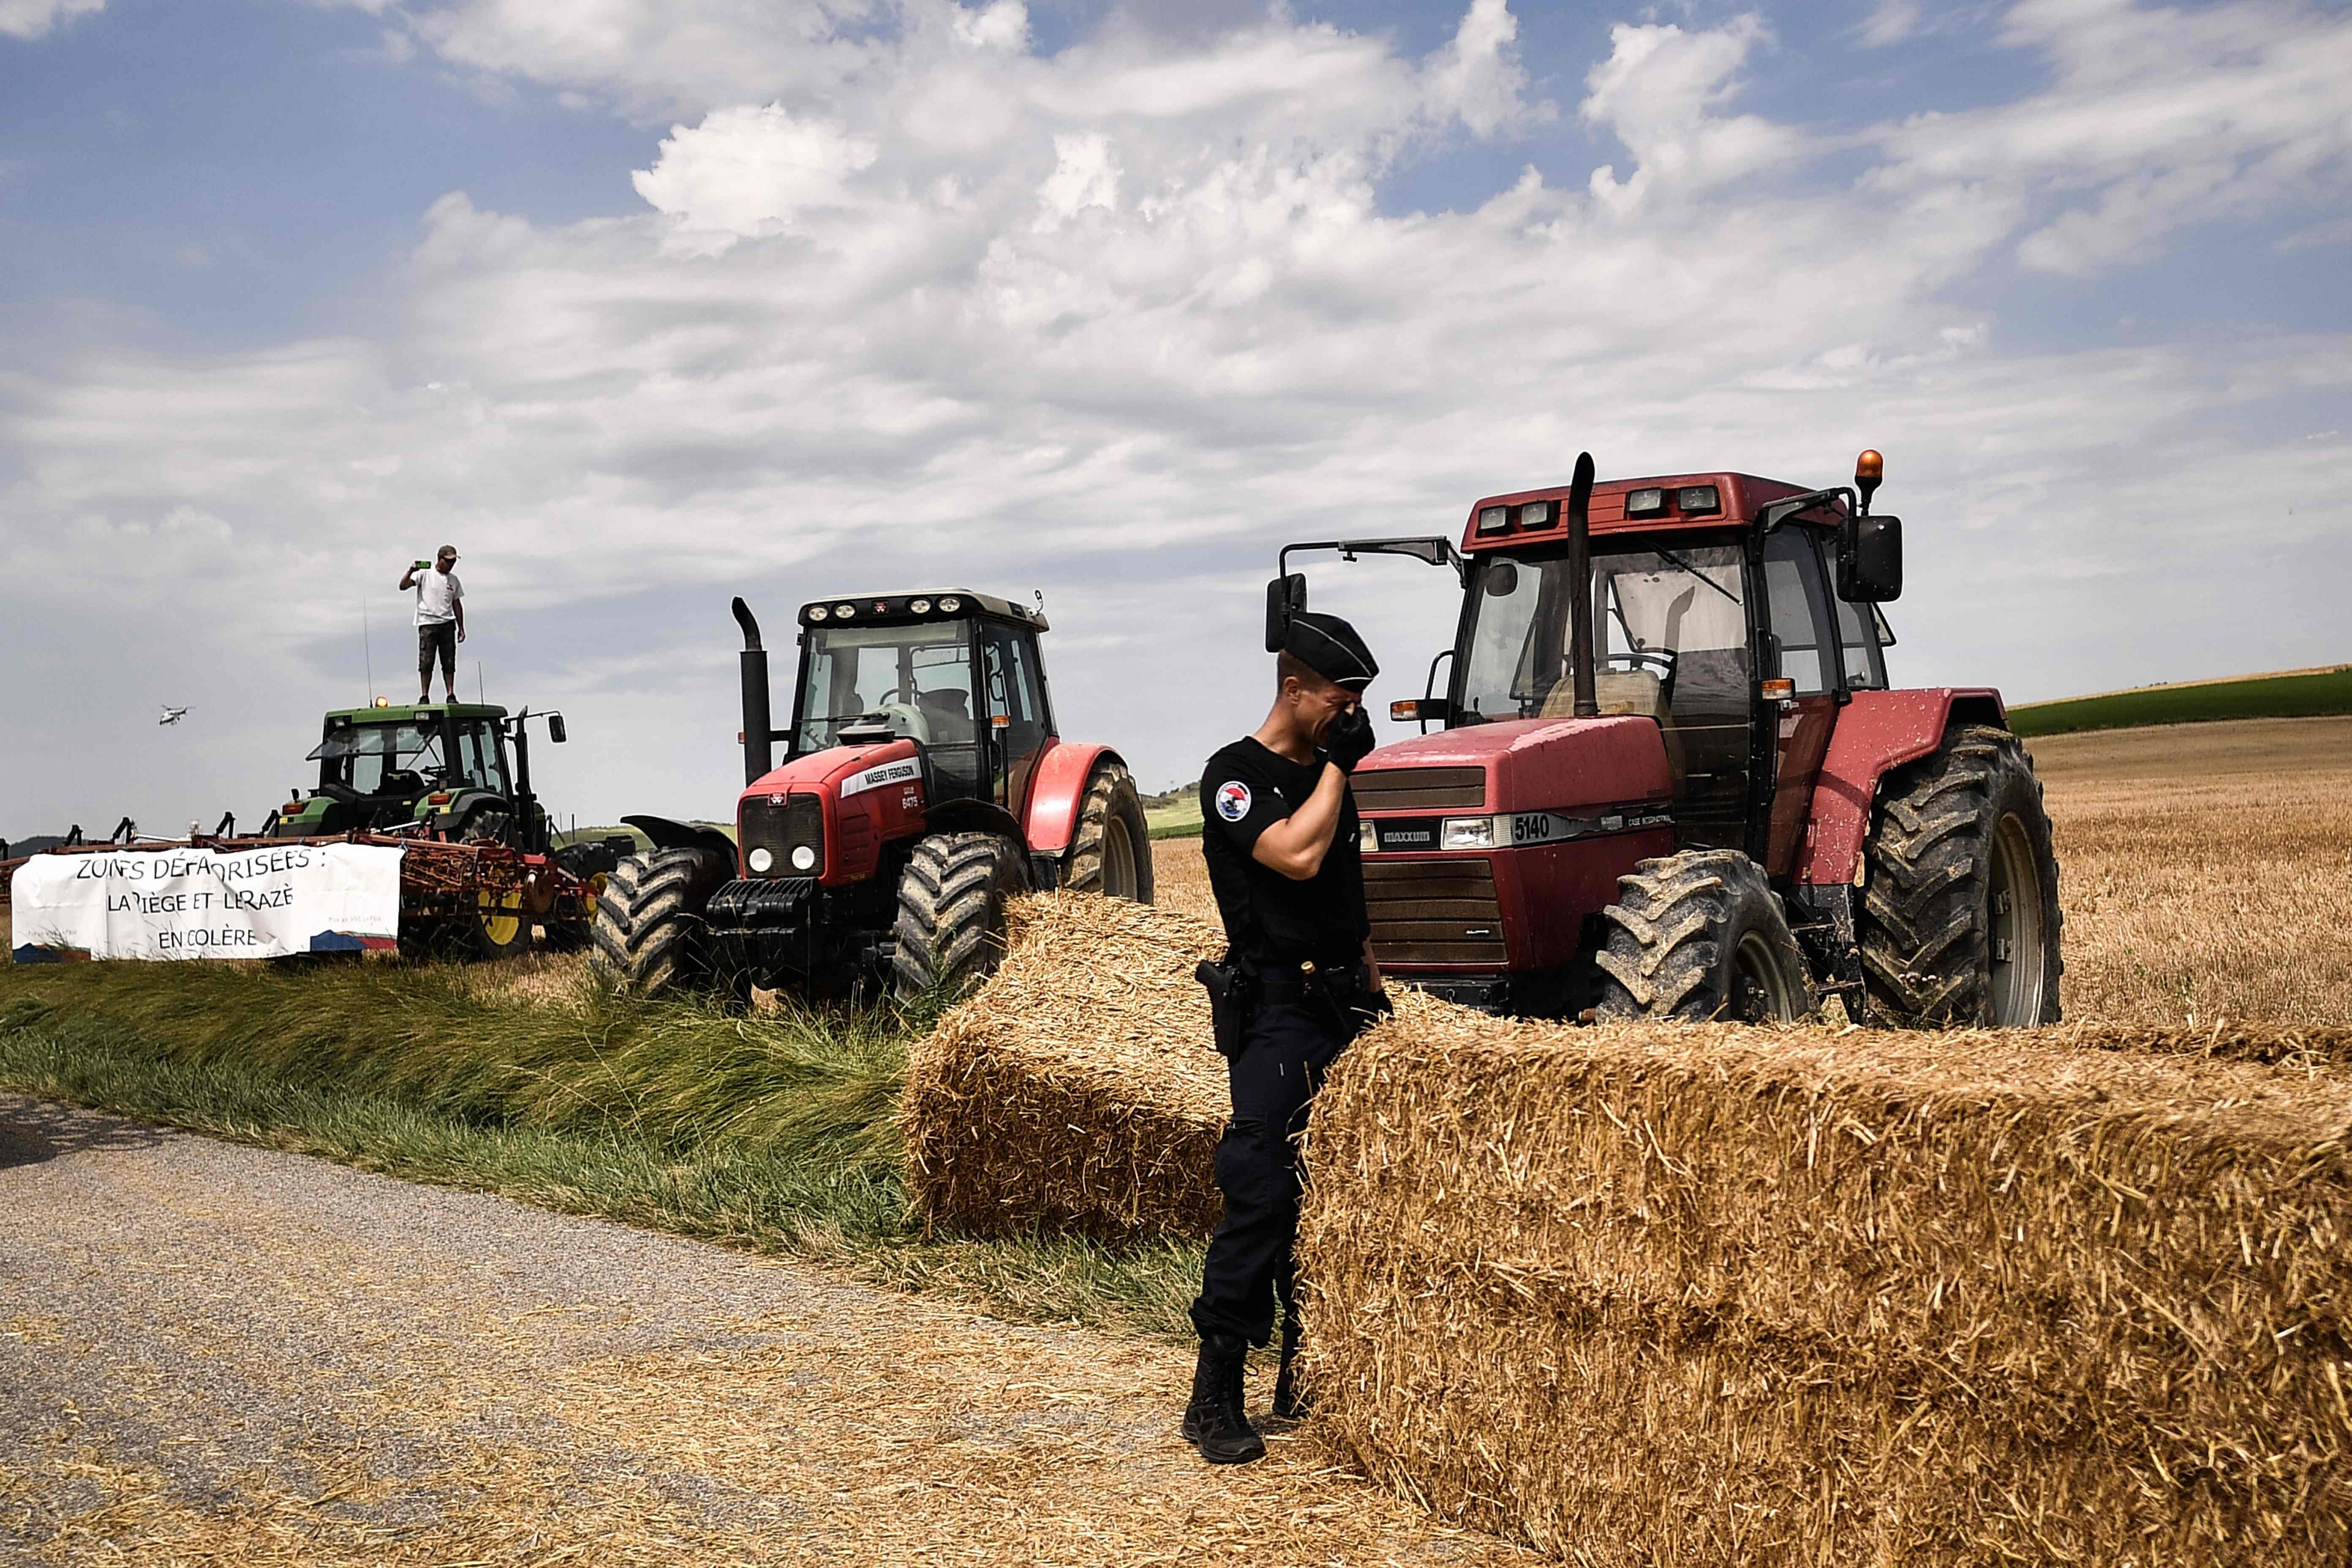 A policeman covers his face in front of the tractors that loaded bales of hay into the road at the Tour de France